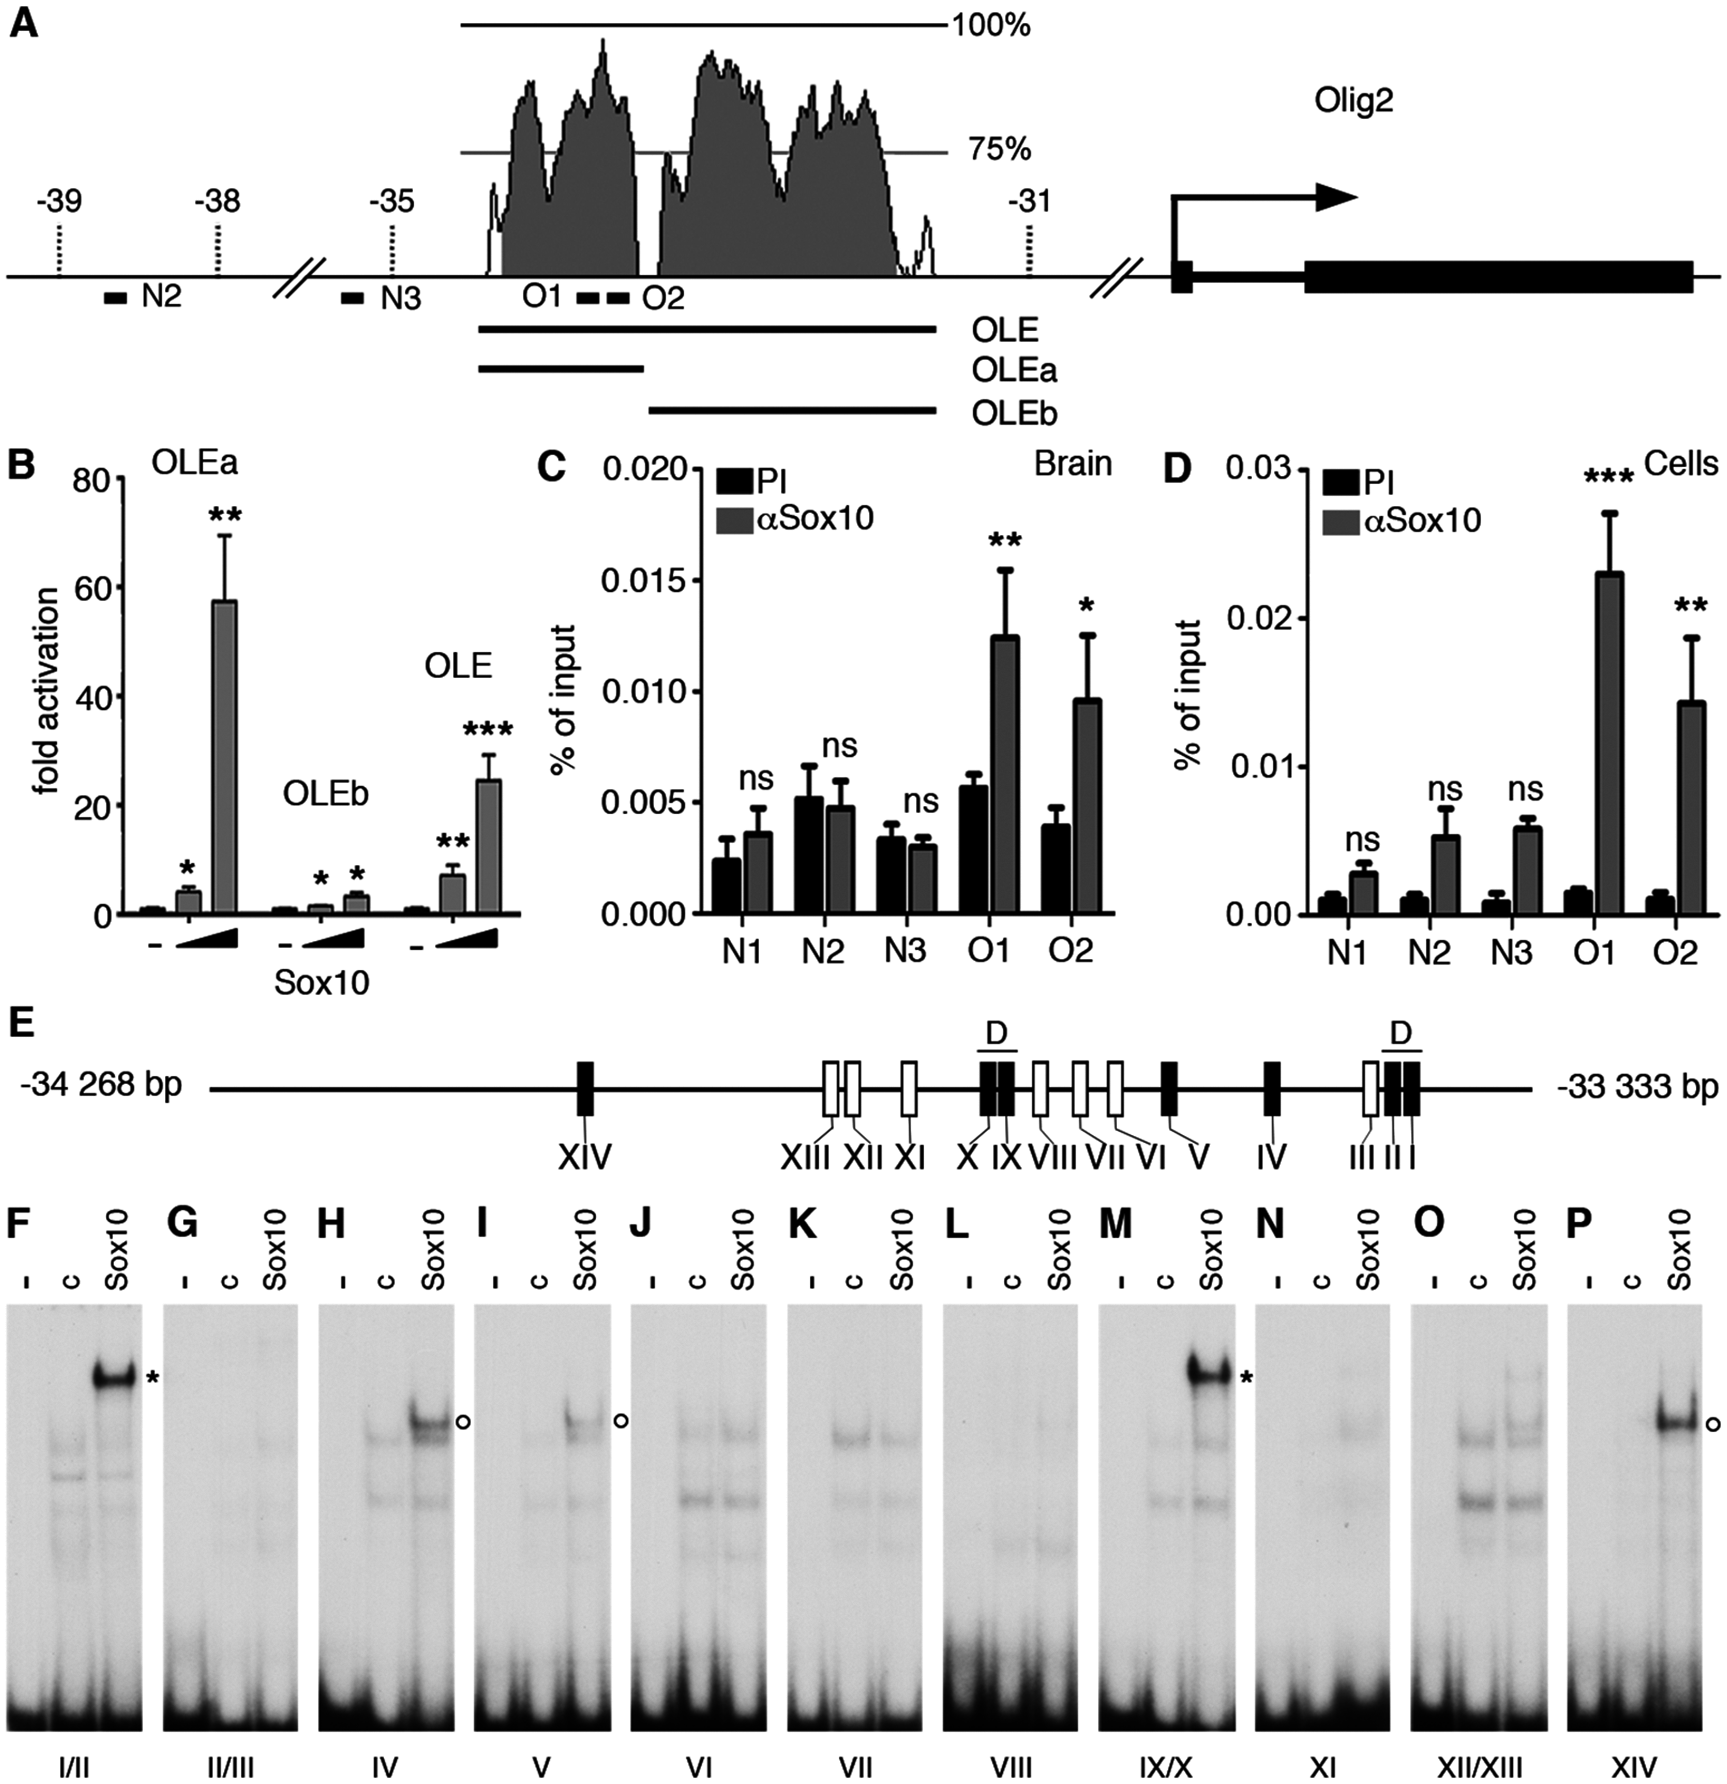 The evolutionary conserved OLE and its OLEa subfragment are directly activated and bound by Sox10.